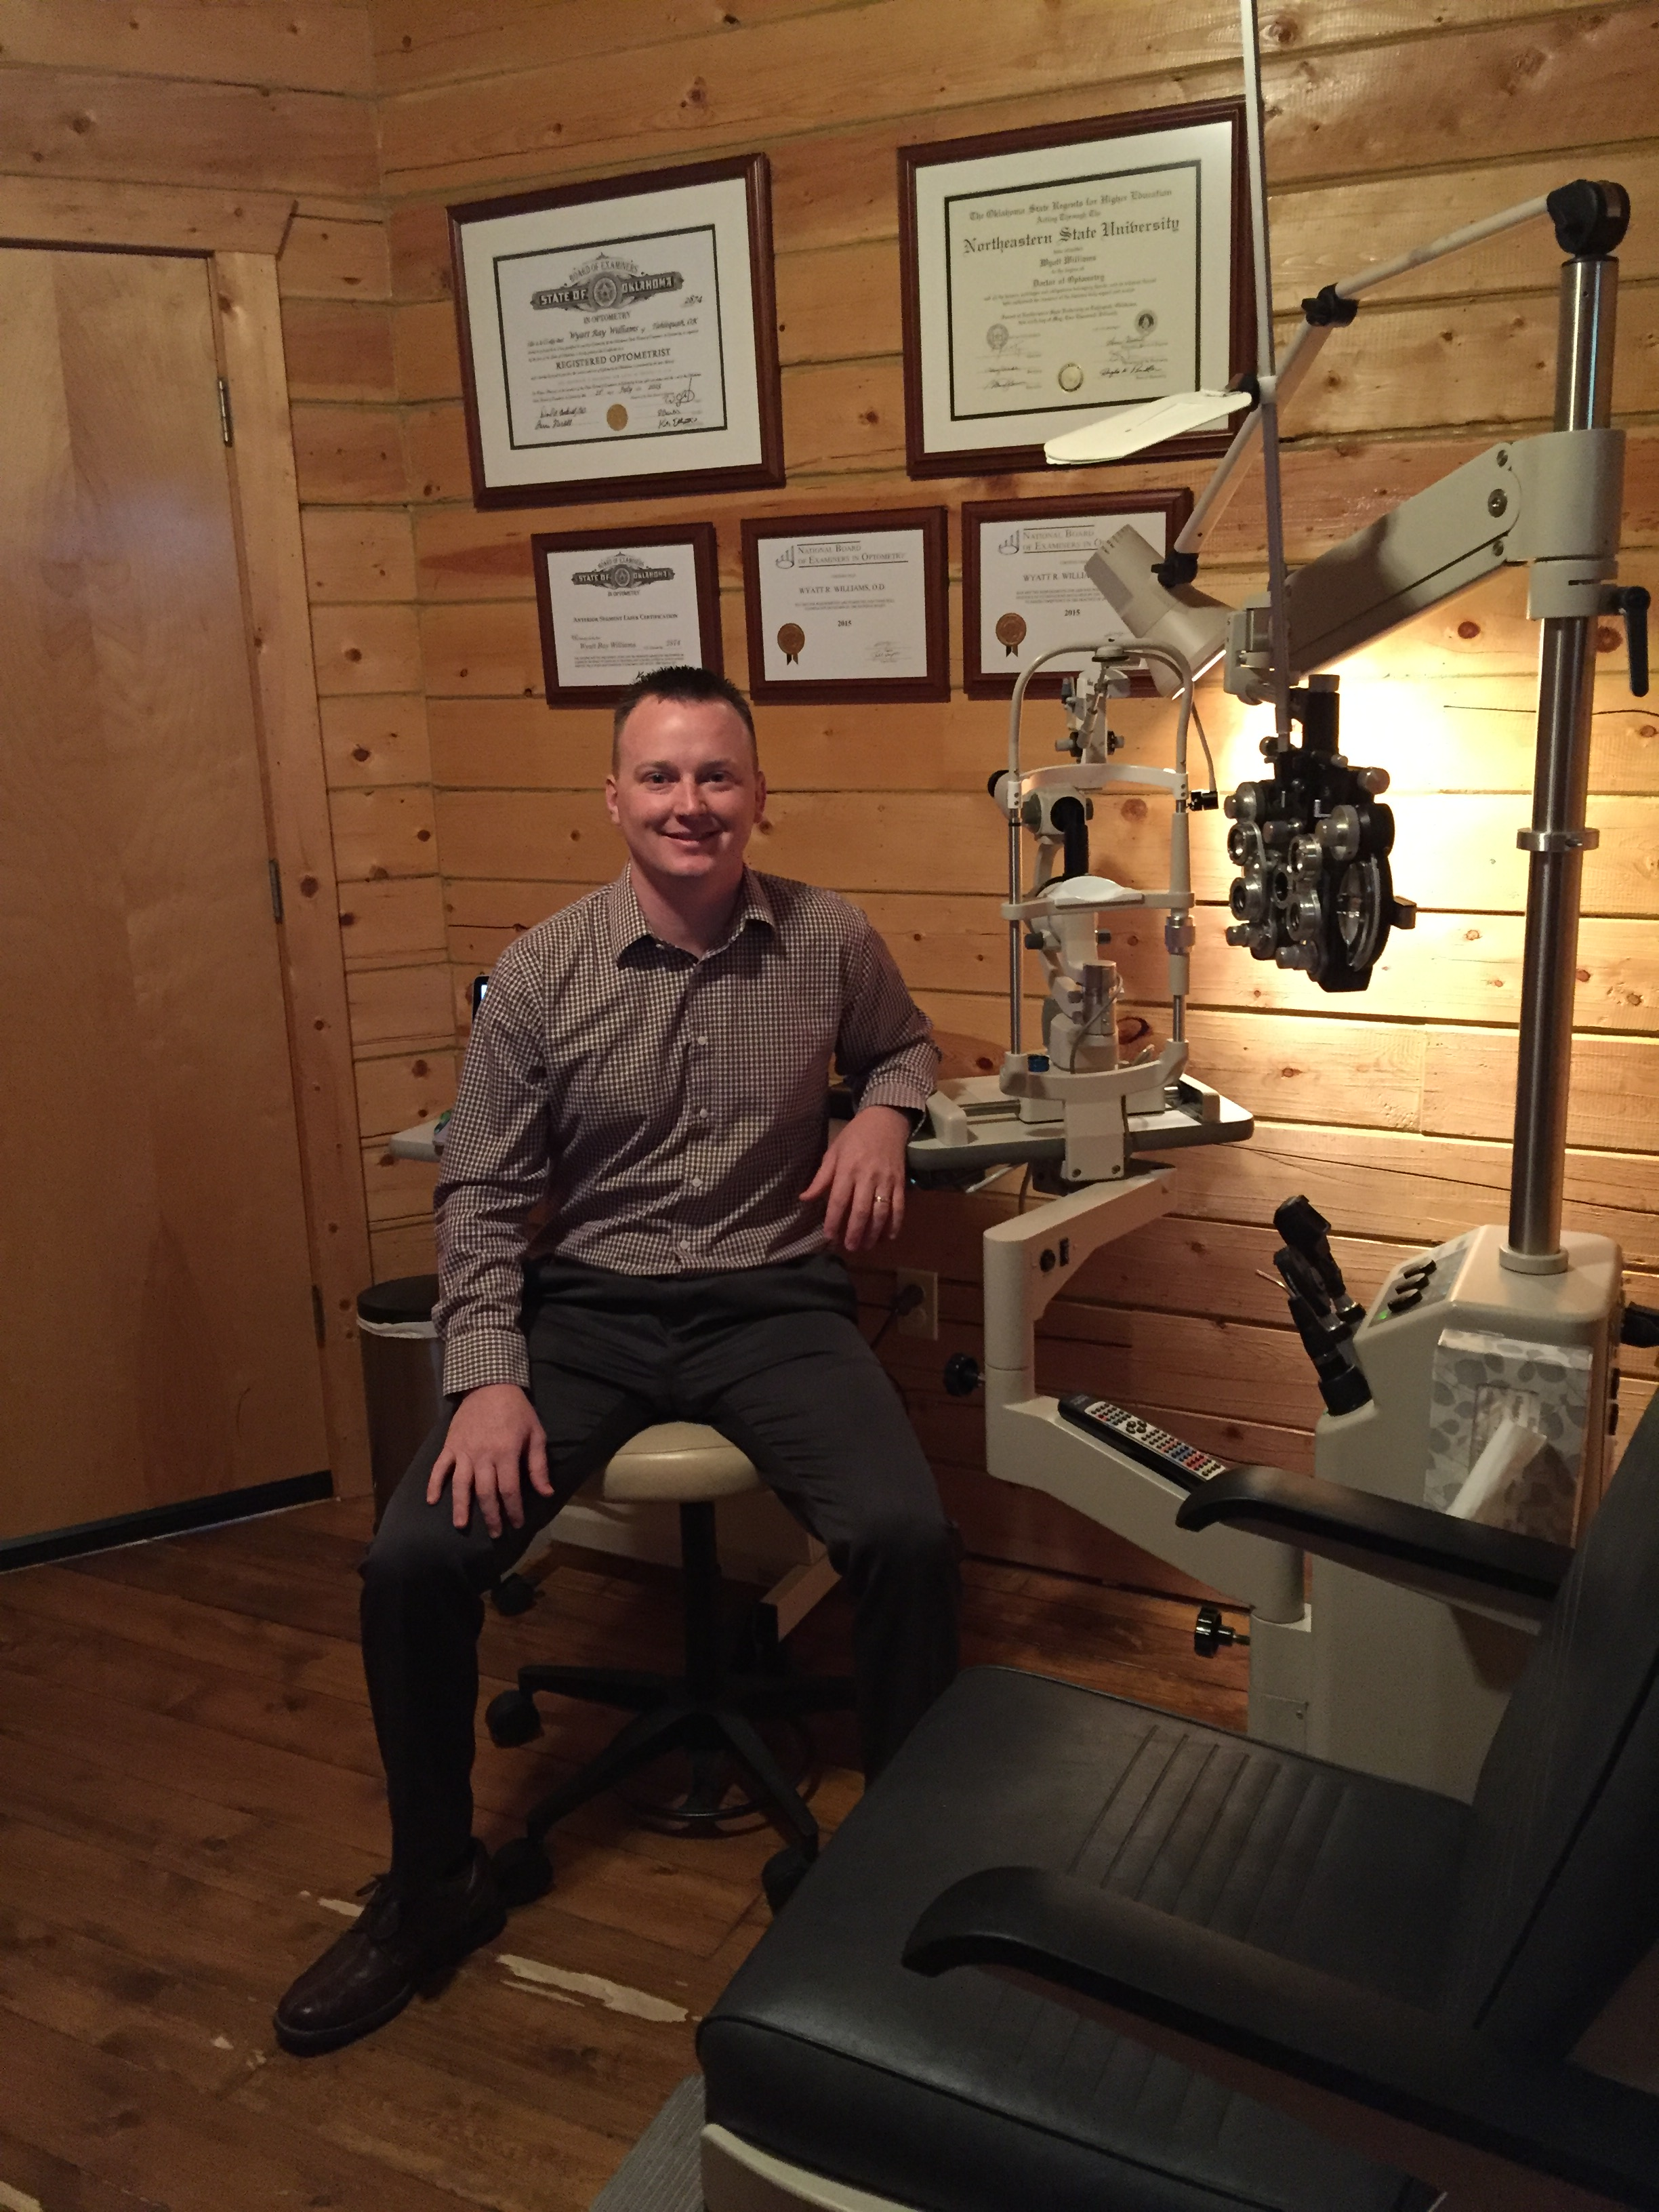 Dr. Wyatt Williams at Keys Eye Care, the practice he launched last year.